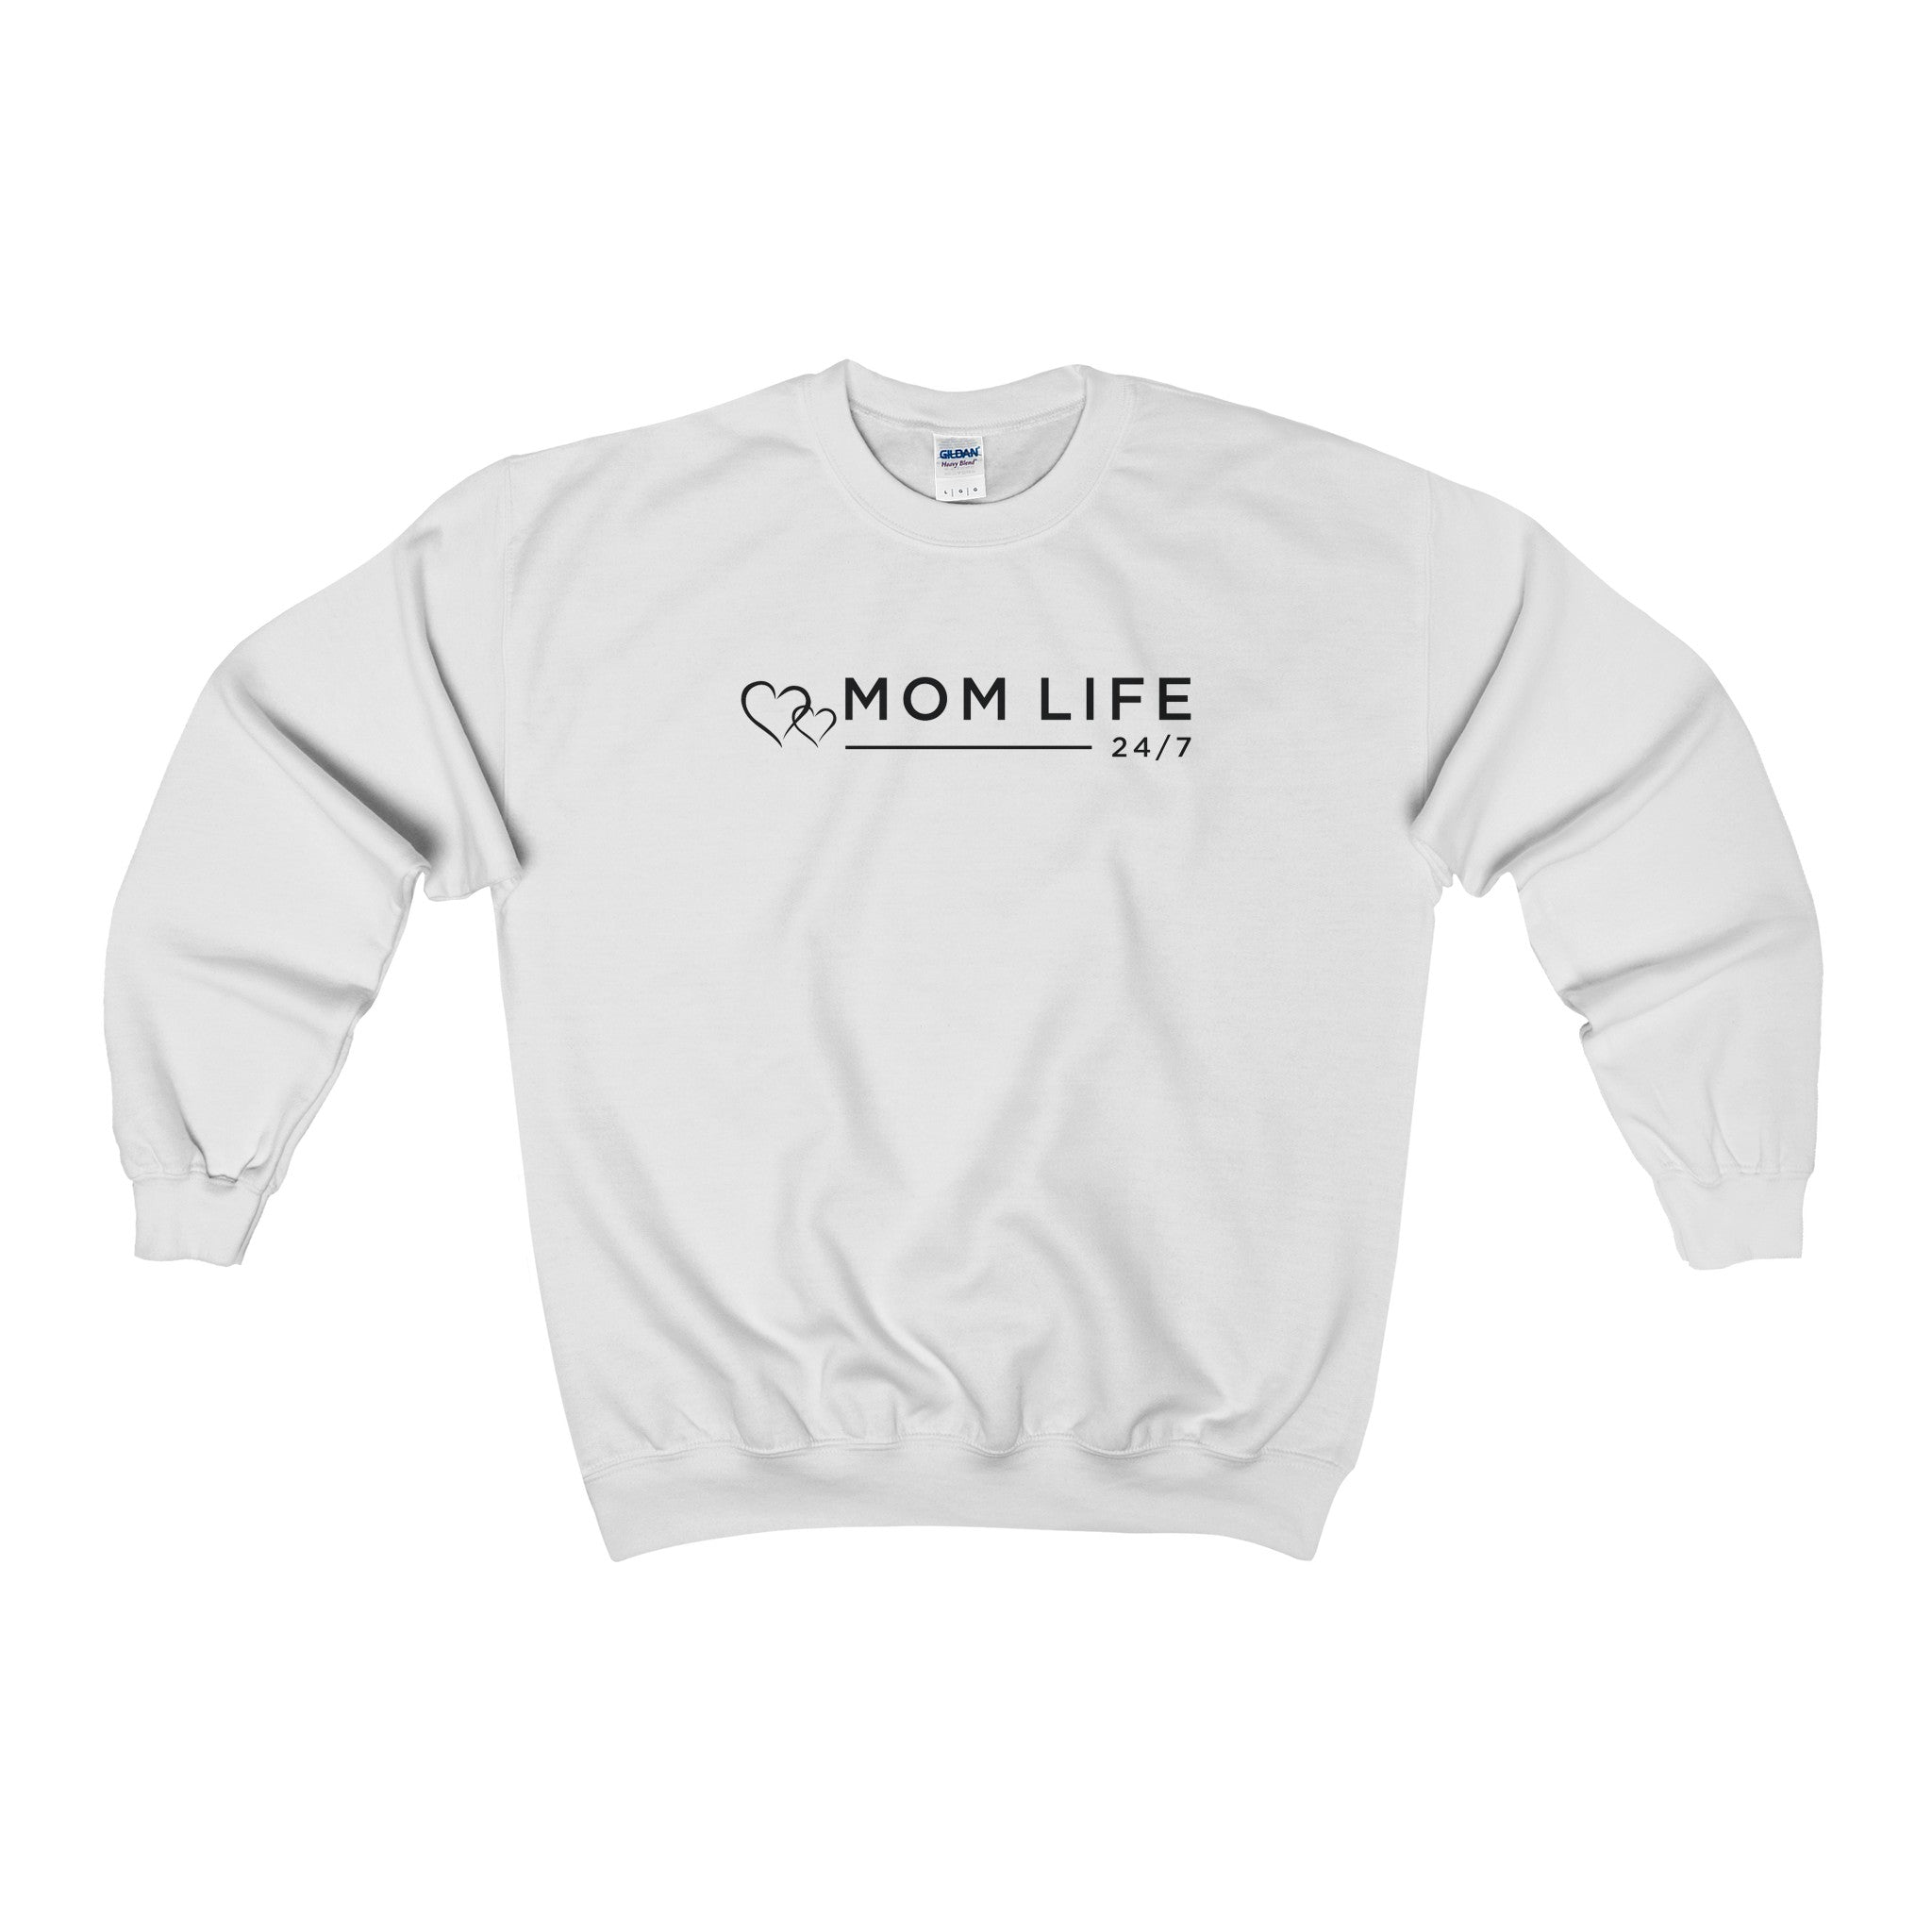 ML247 LOGO - Sweatshirt (Unisex)